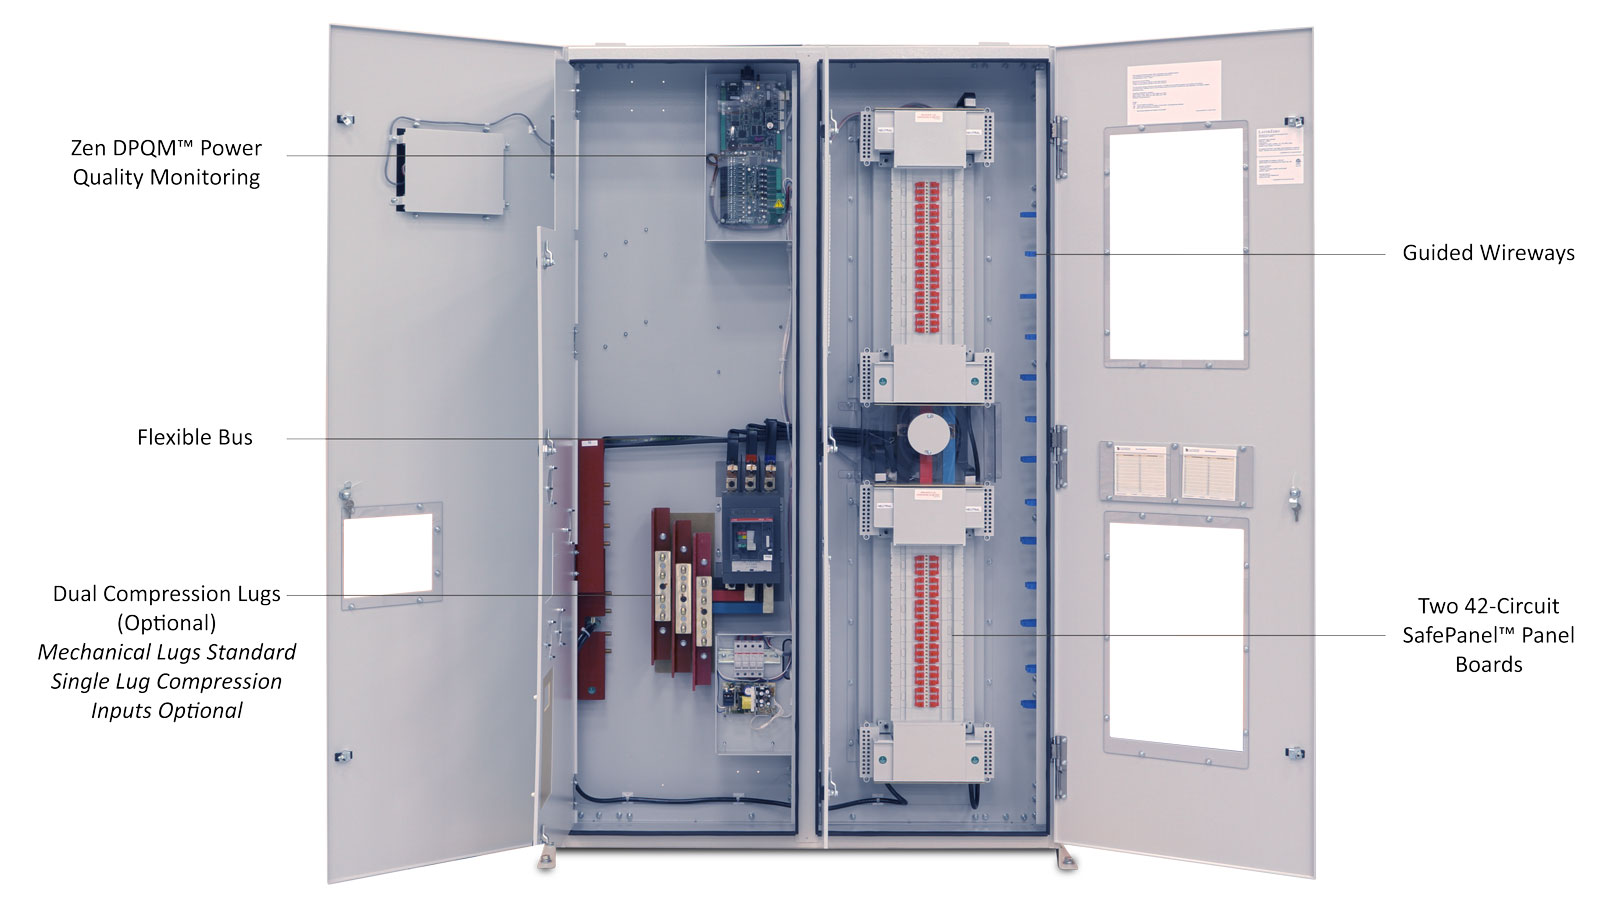 ePanel-2 Remote Power Panel Interior